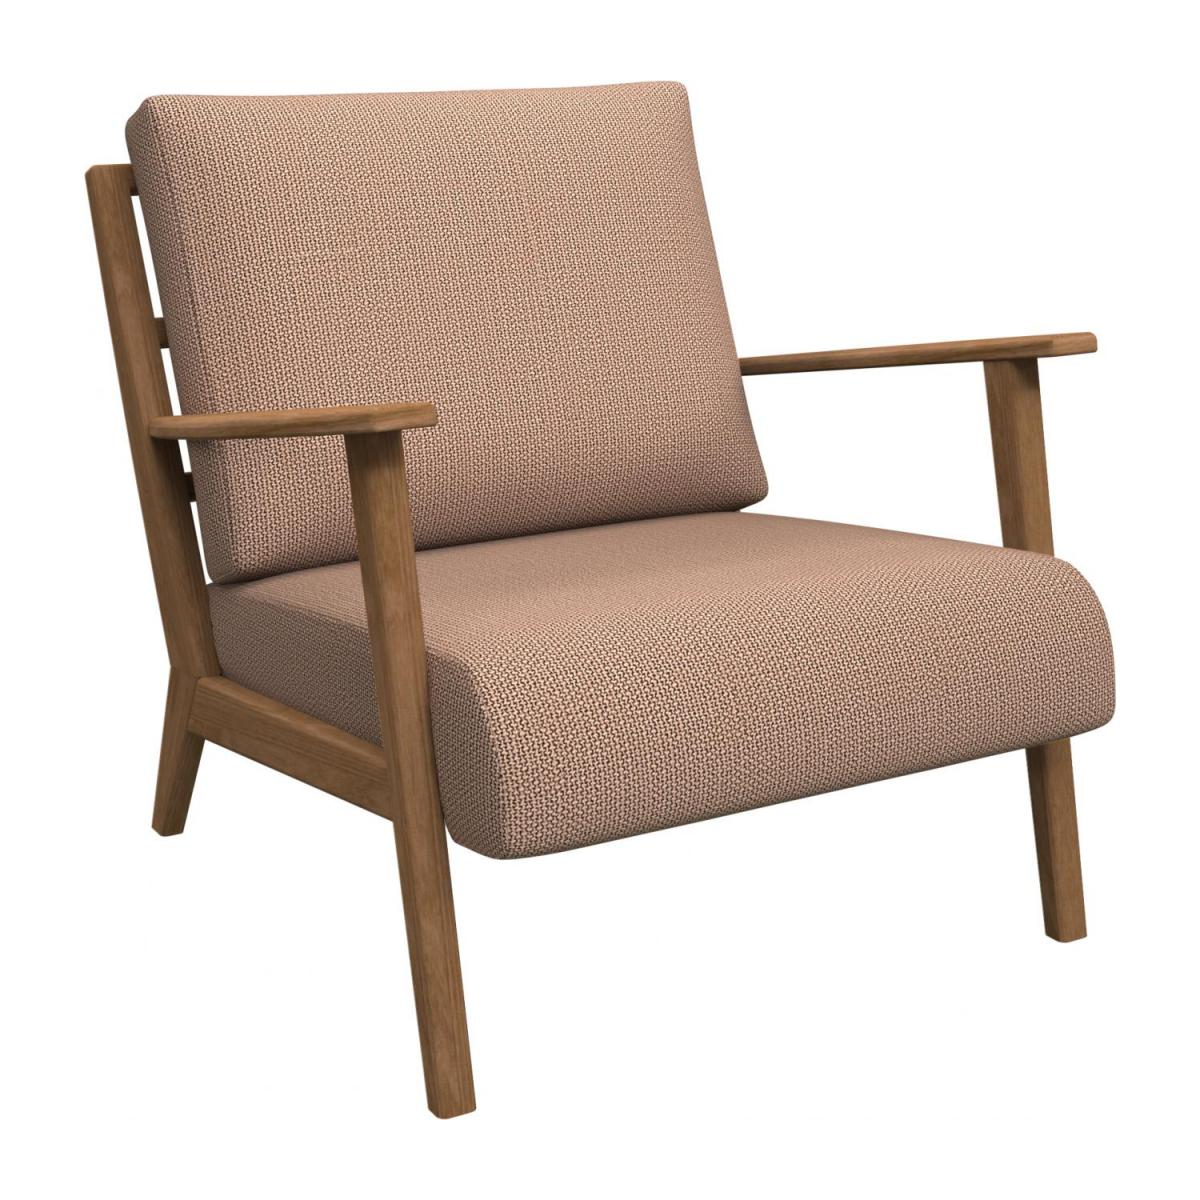 Armchair in Fasoli fabric, jatoba brown n°1